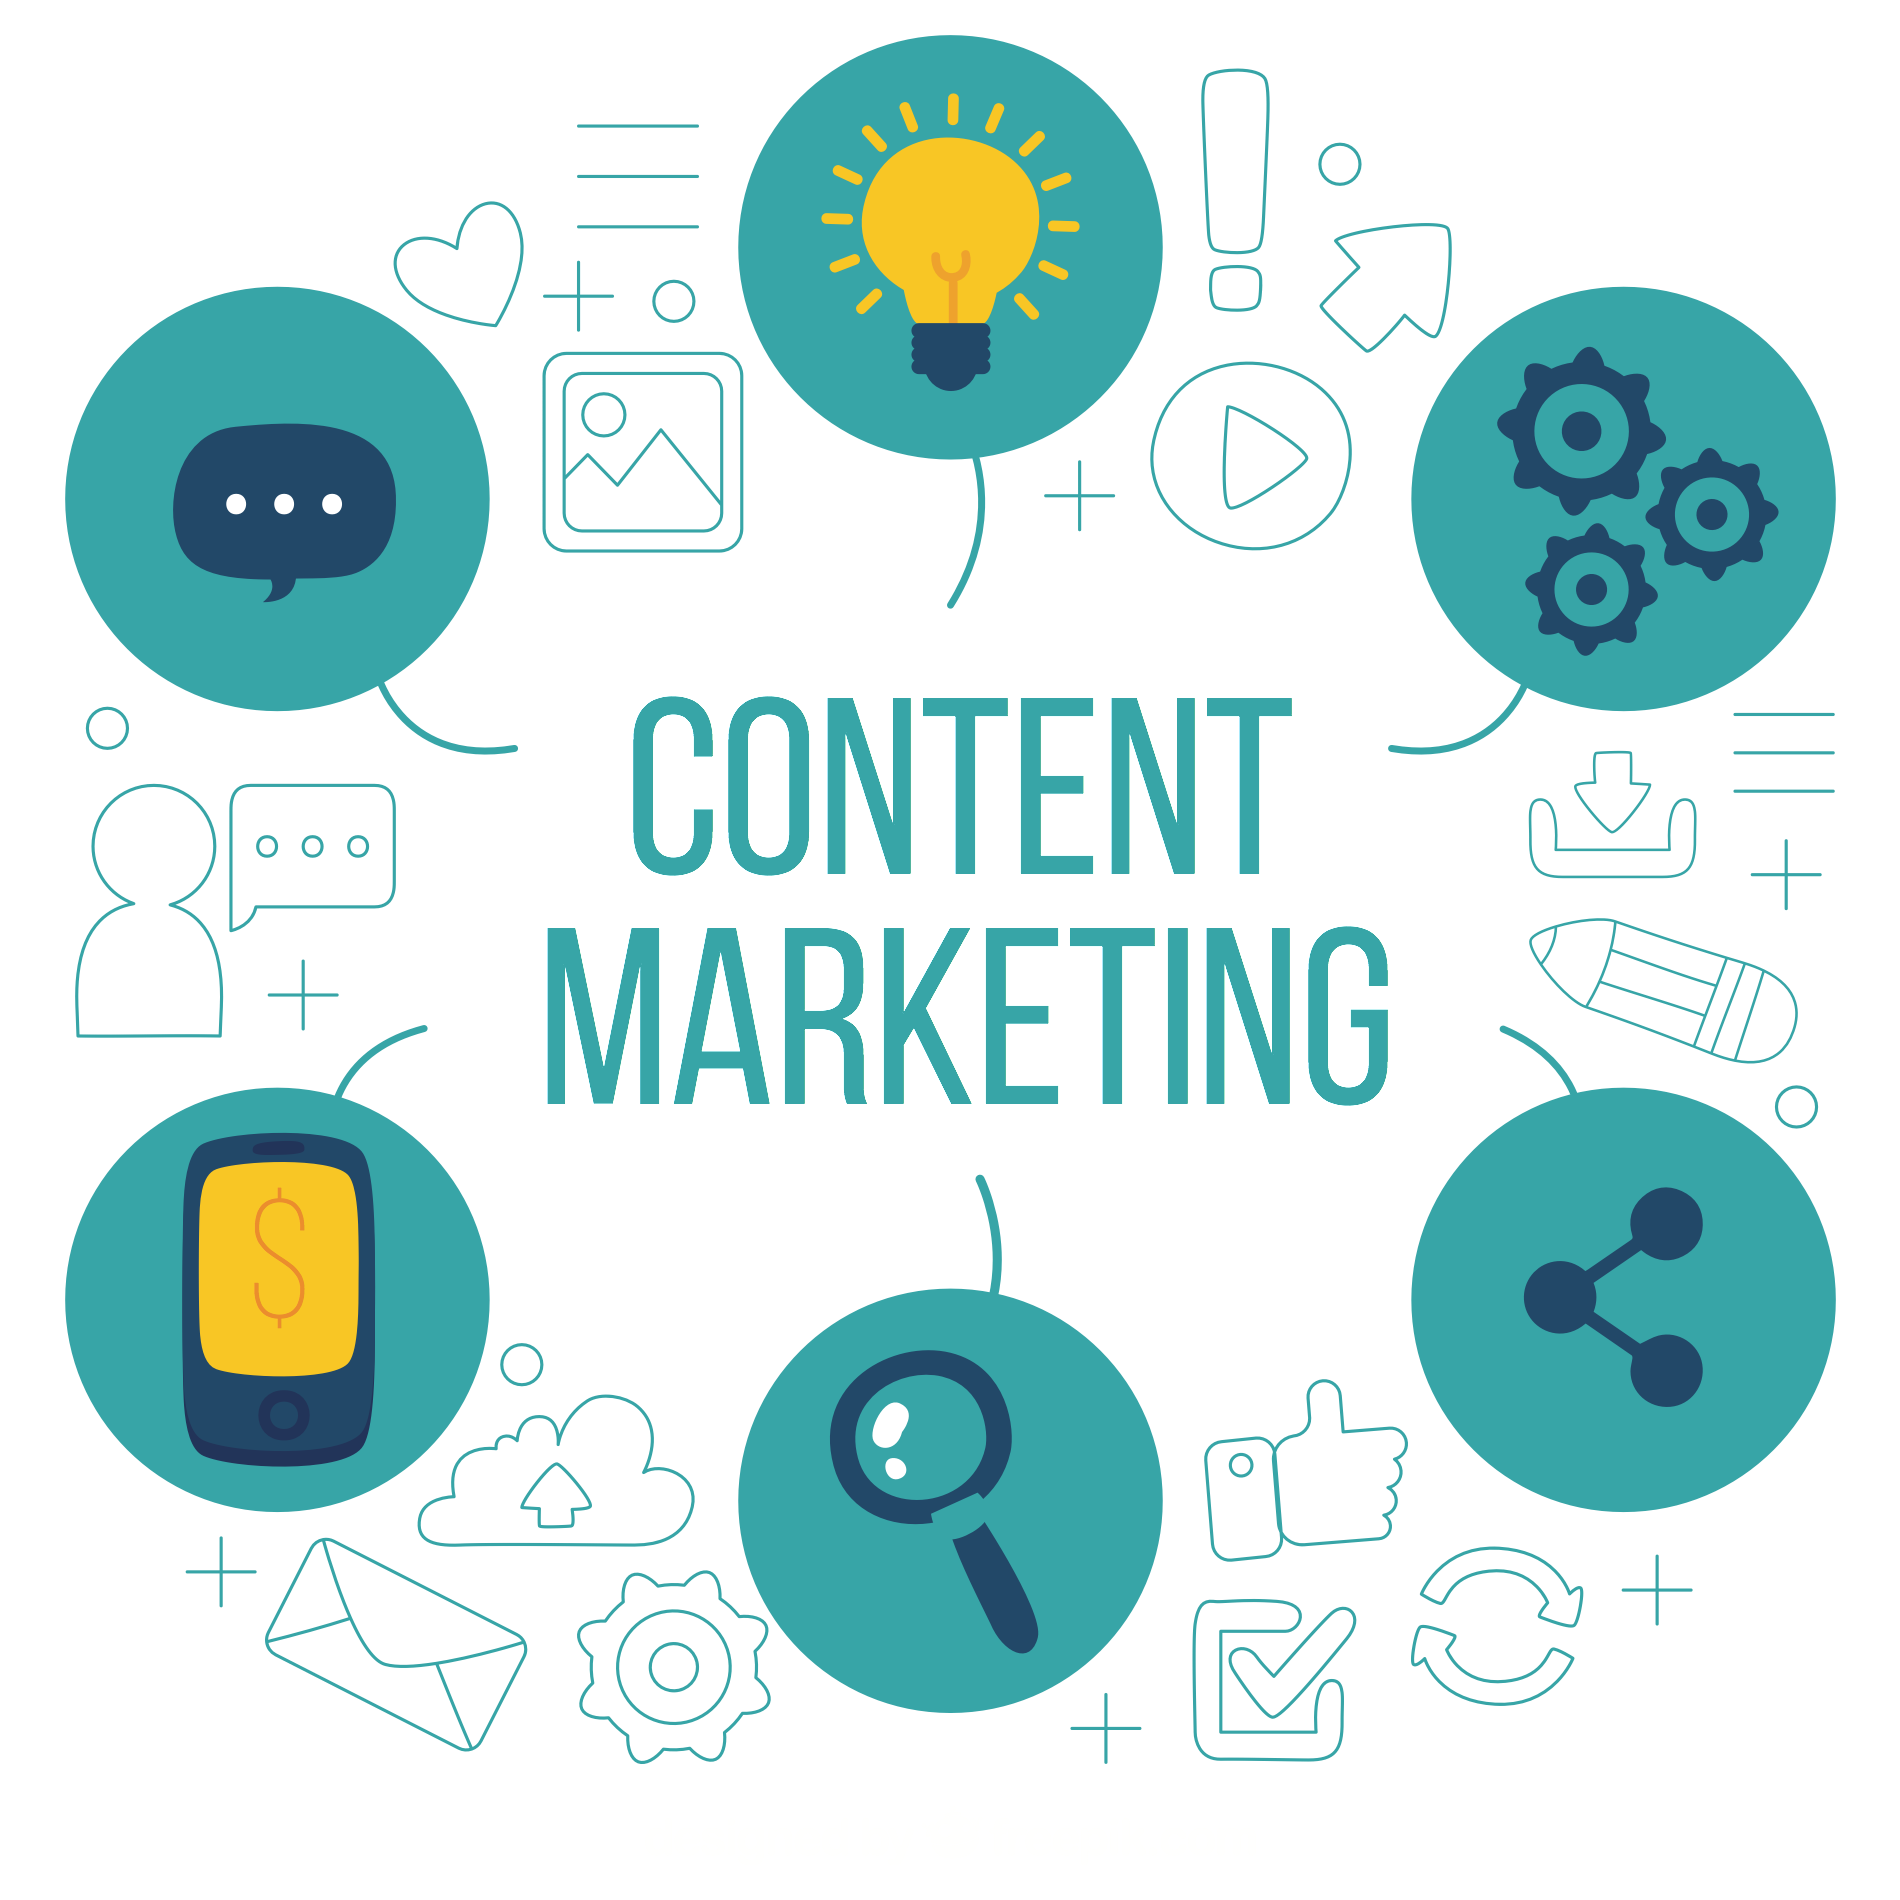 What Is Content Marketing Services